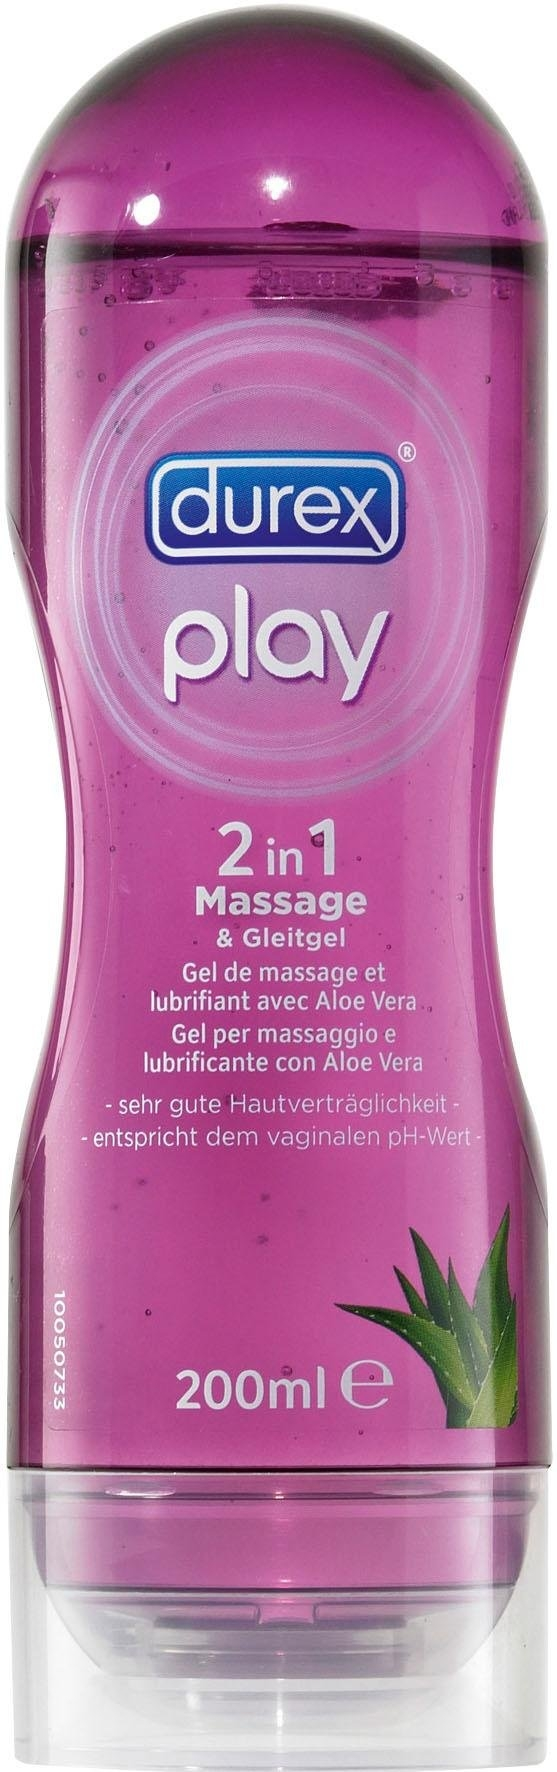 Durex glij- en massagegel '2-in-1 massage' nu online bestellen